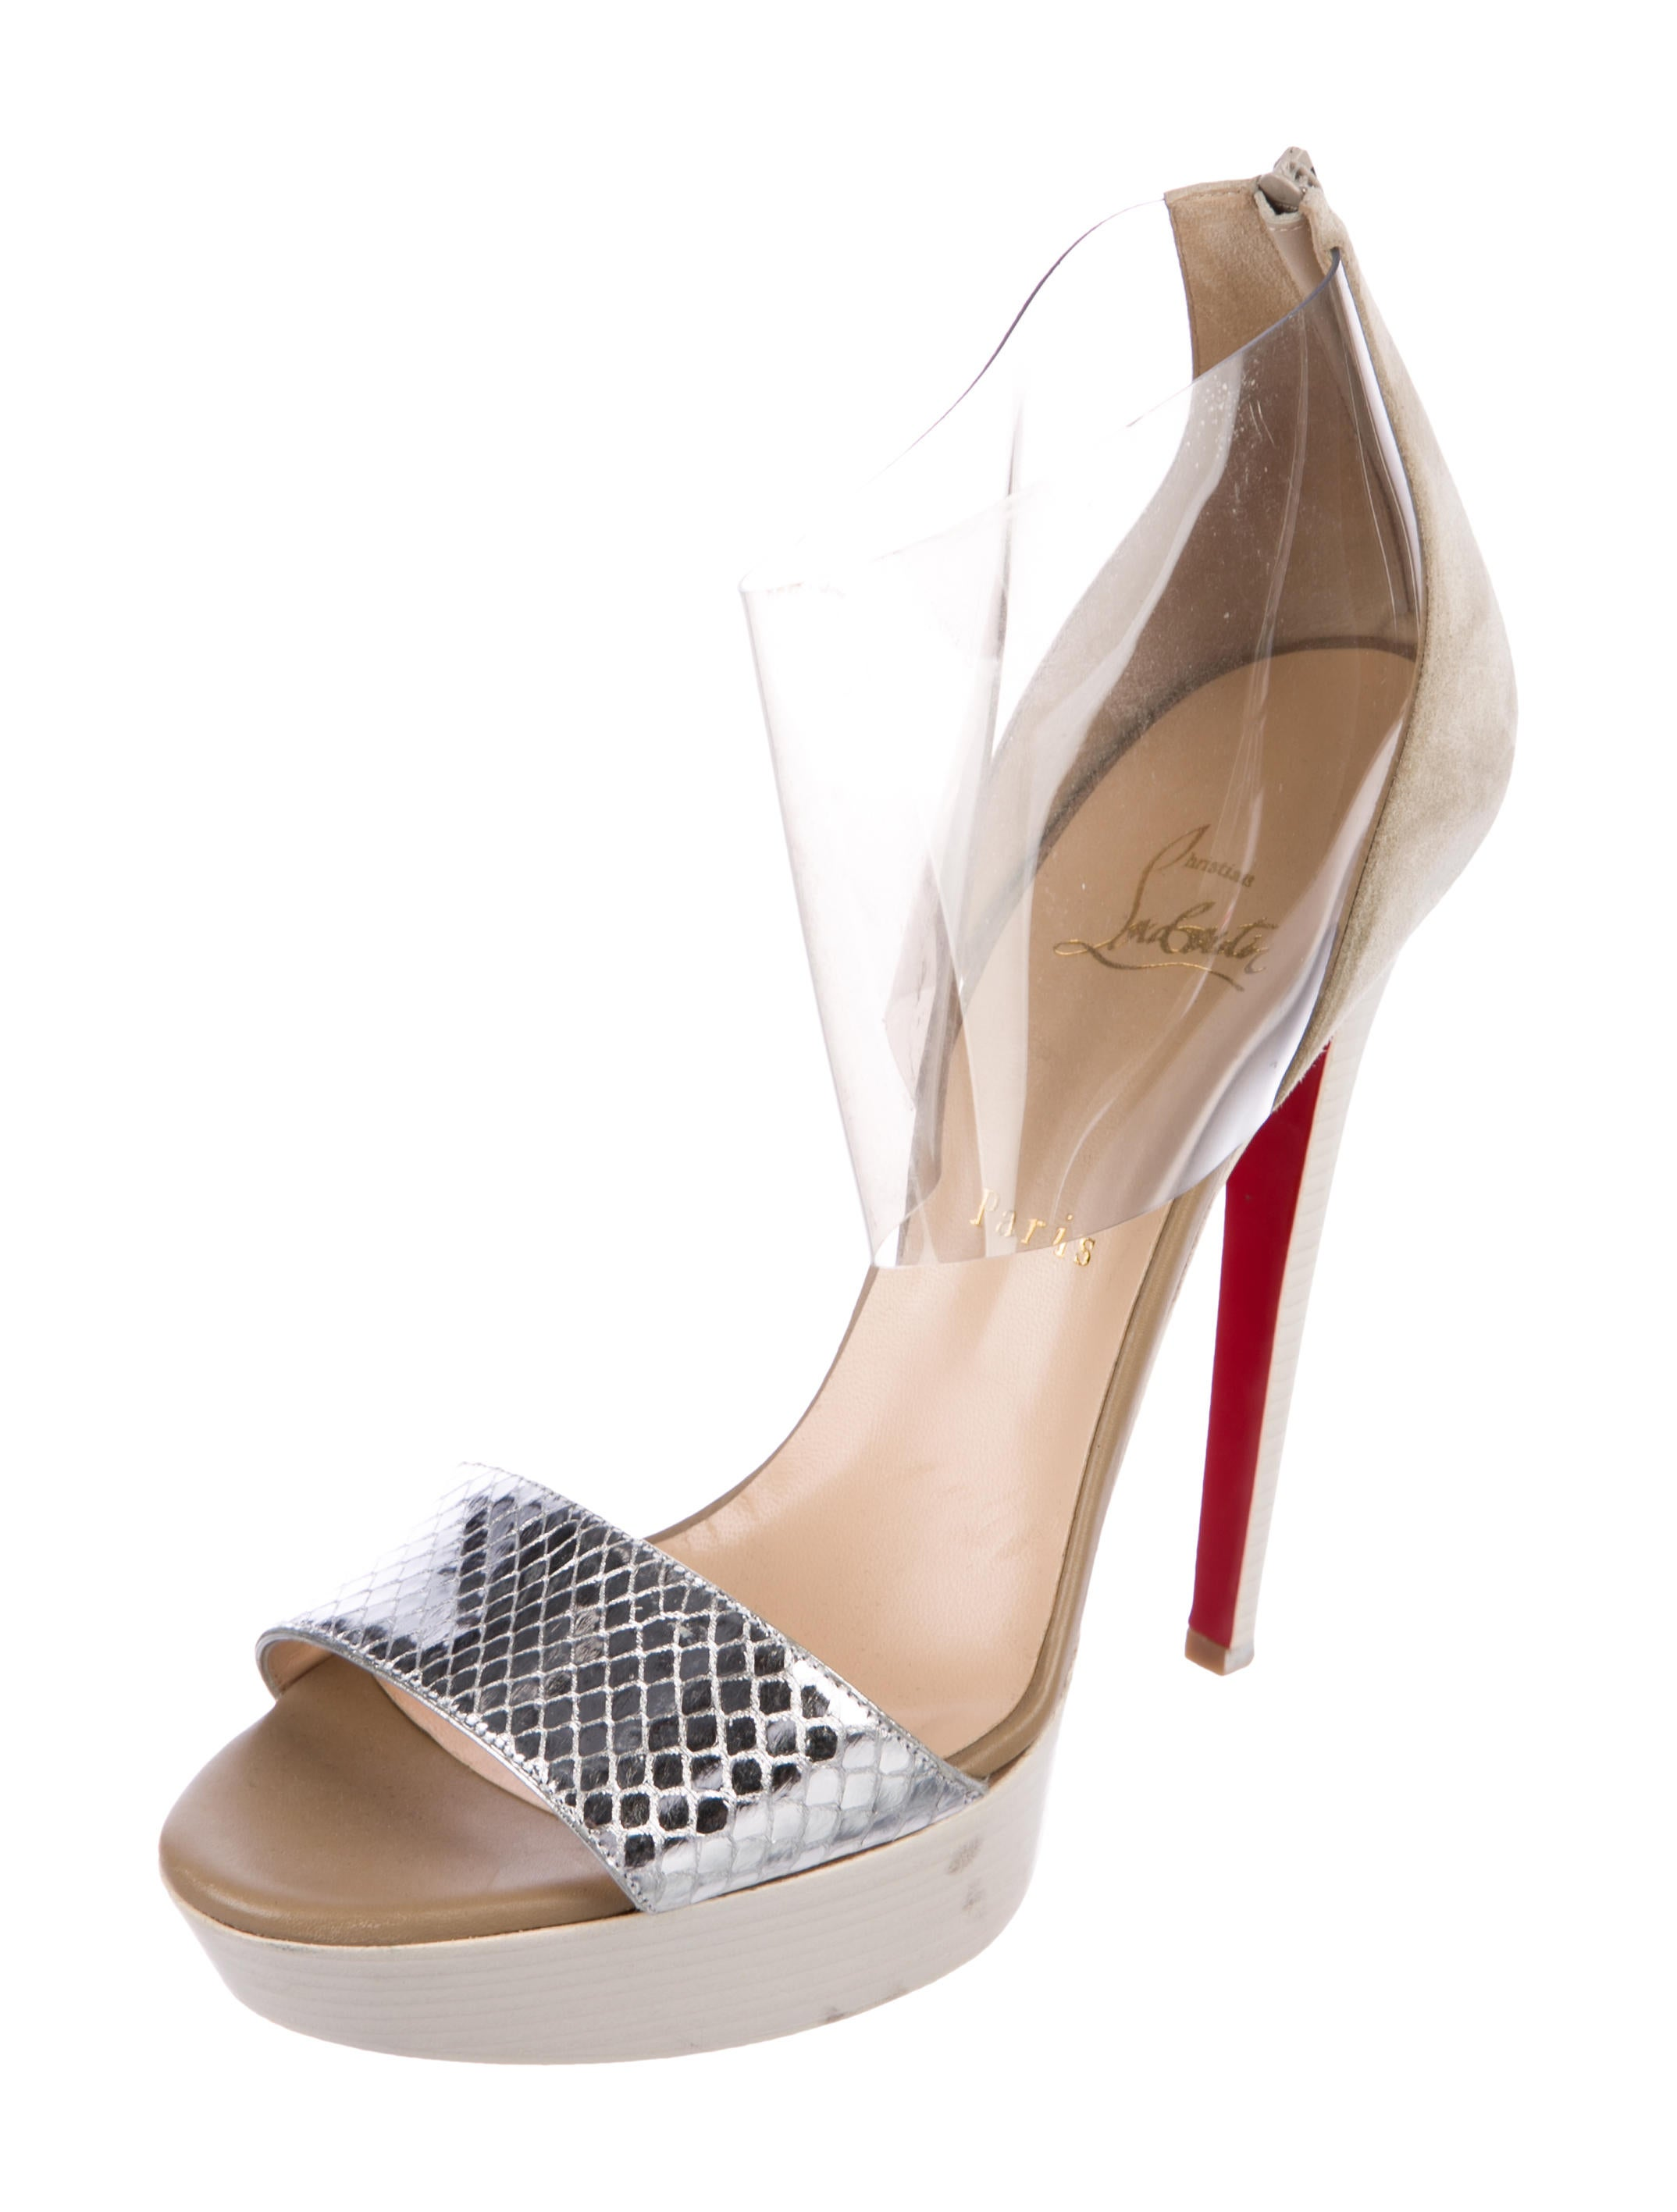 Christian Louboutin Dufoura 140 Snakeskin-Trimmed Sandals free shipping supply uR1Y8G